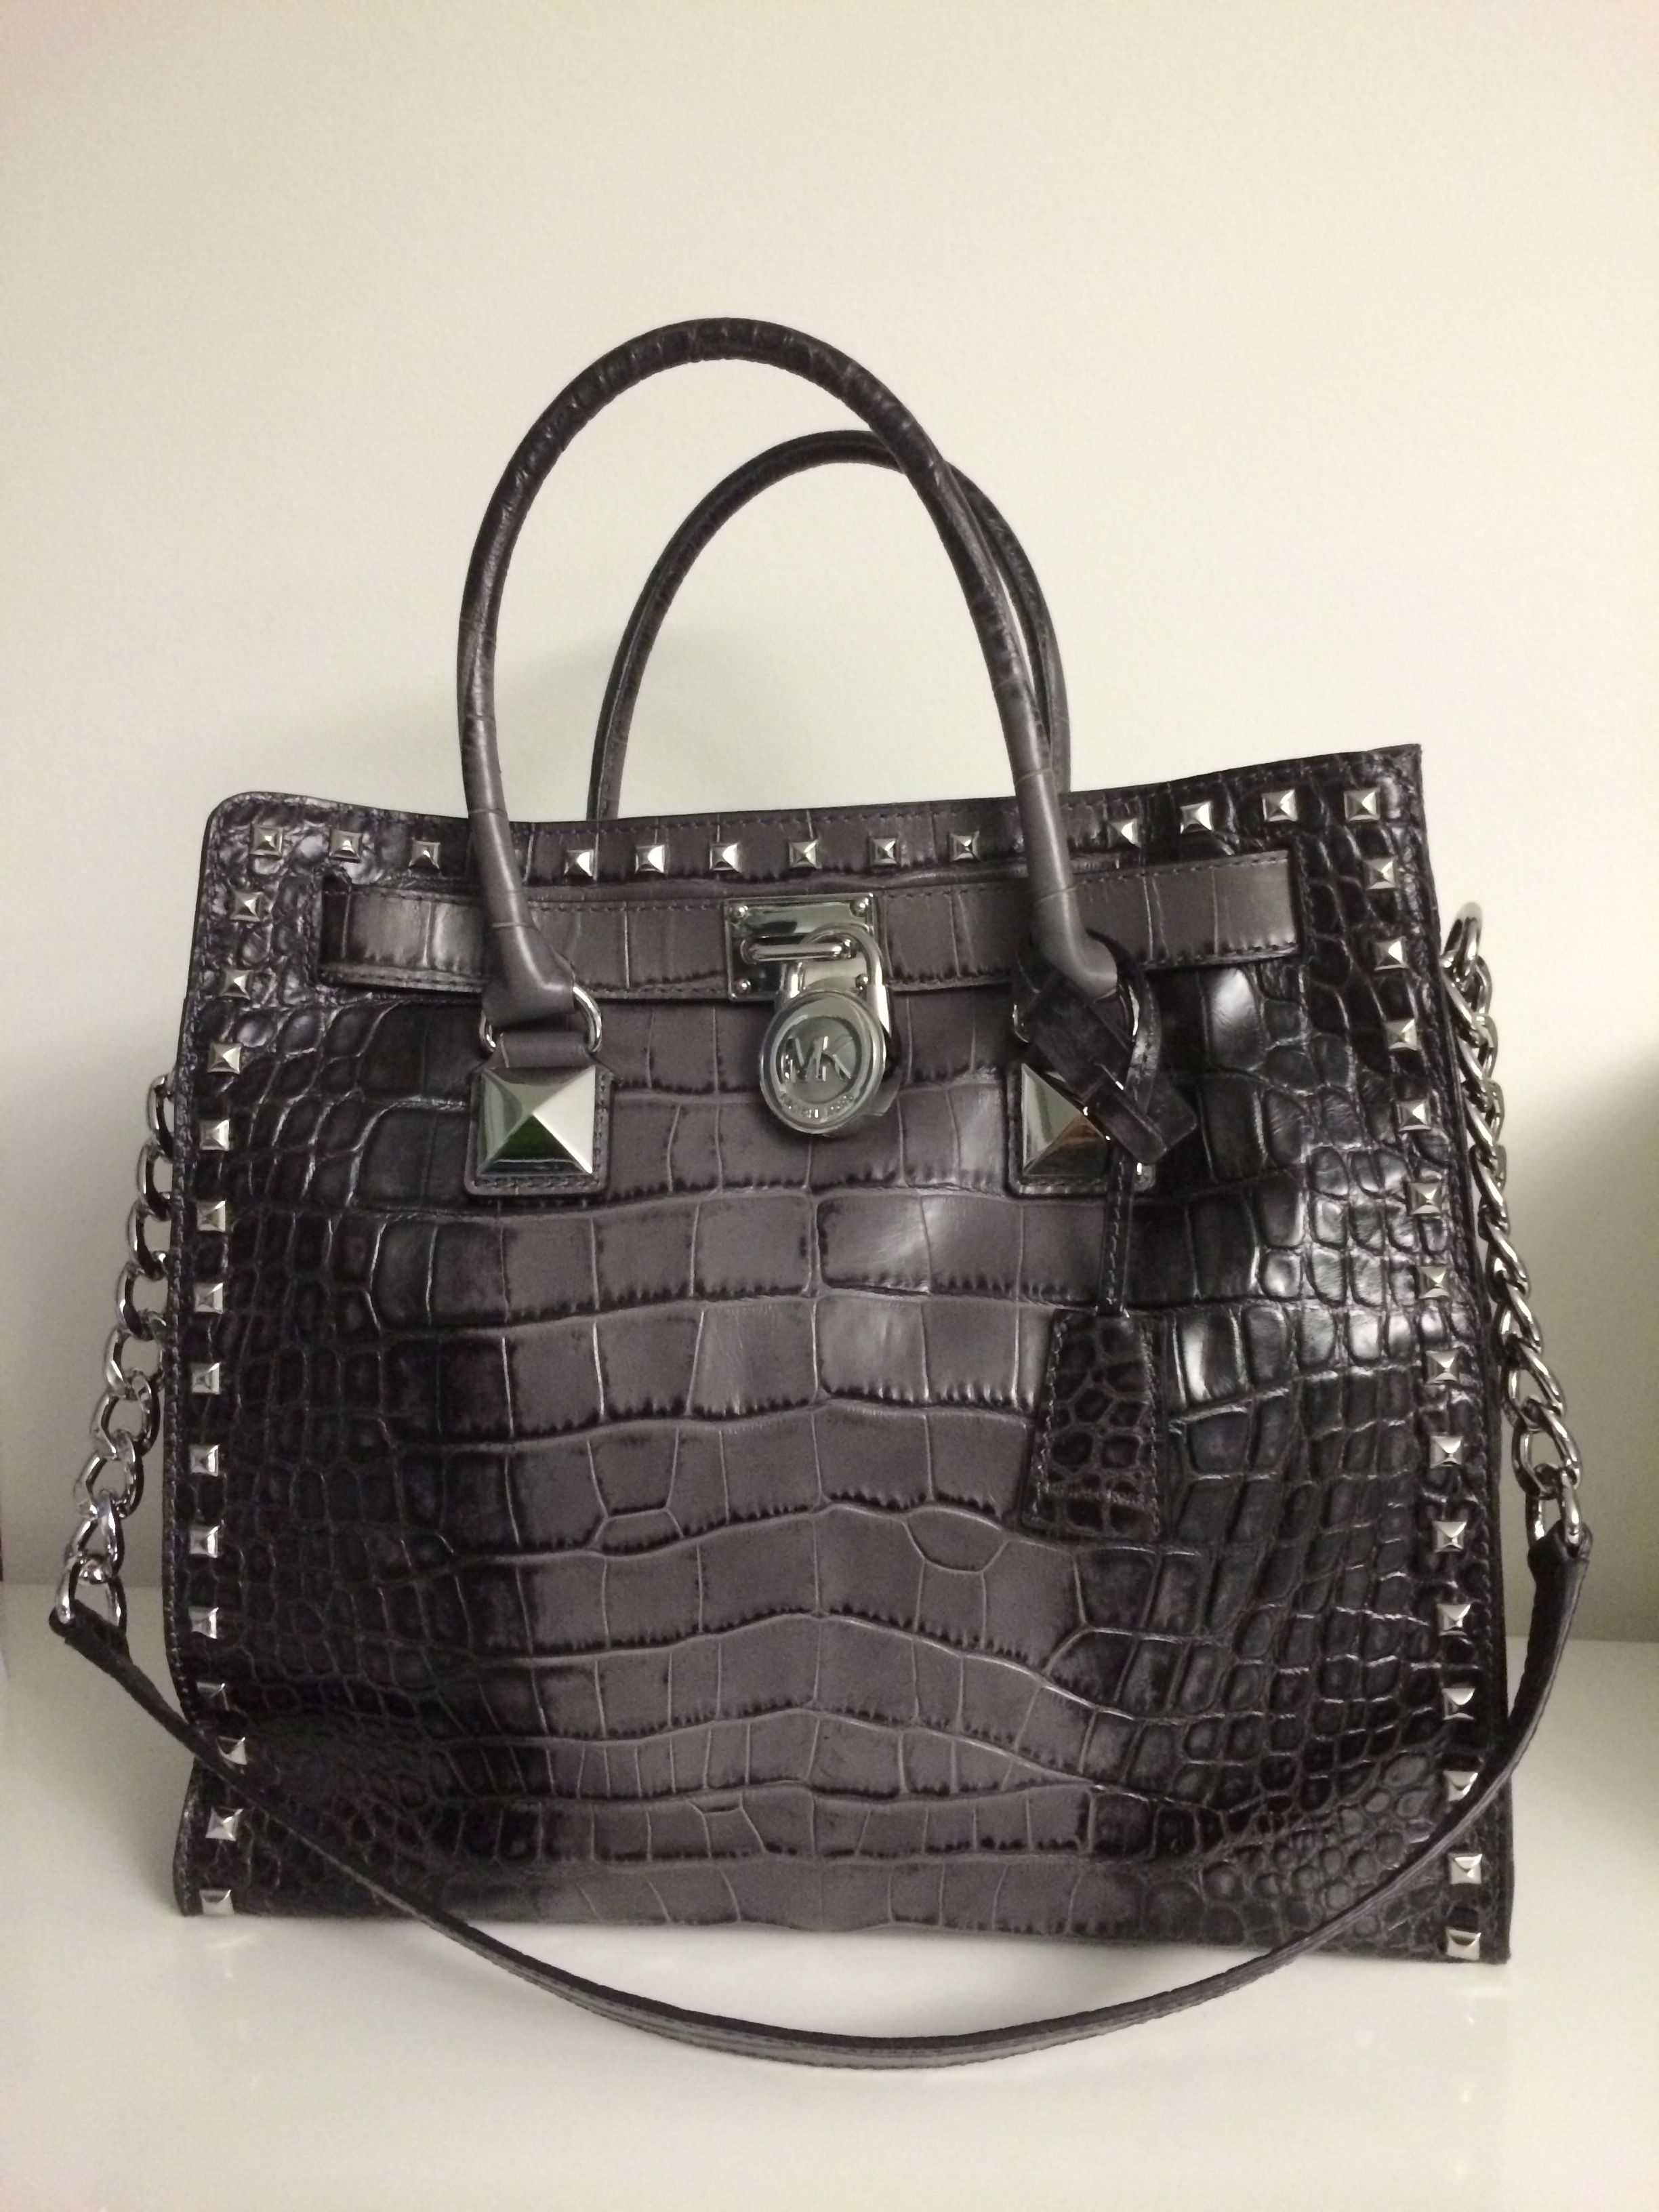 2fc2ad8a8f3c My new Michael Kors Large Hamilton Crocodile-Embossed Tote Grey degrade  crocodile-embossed leather with silver color stud trim